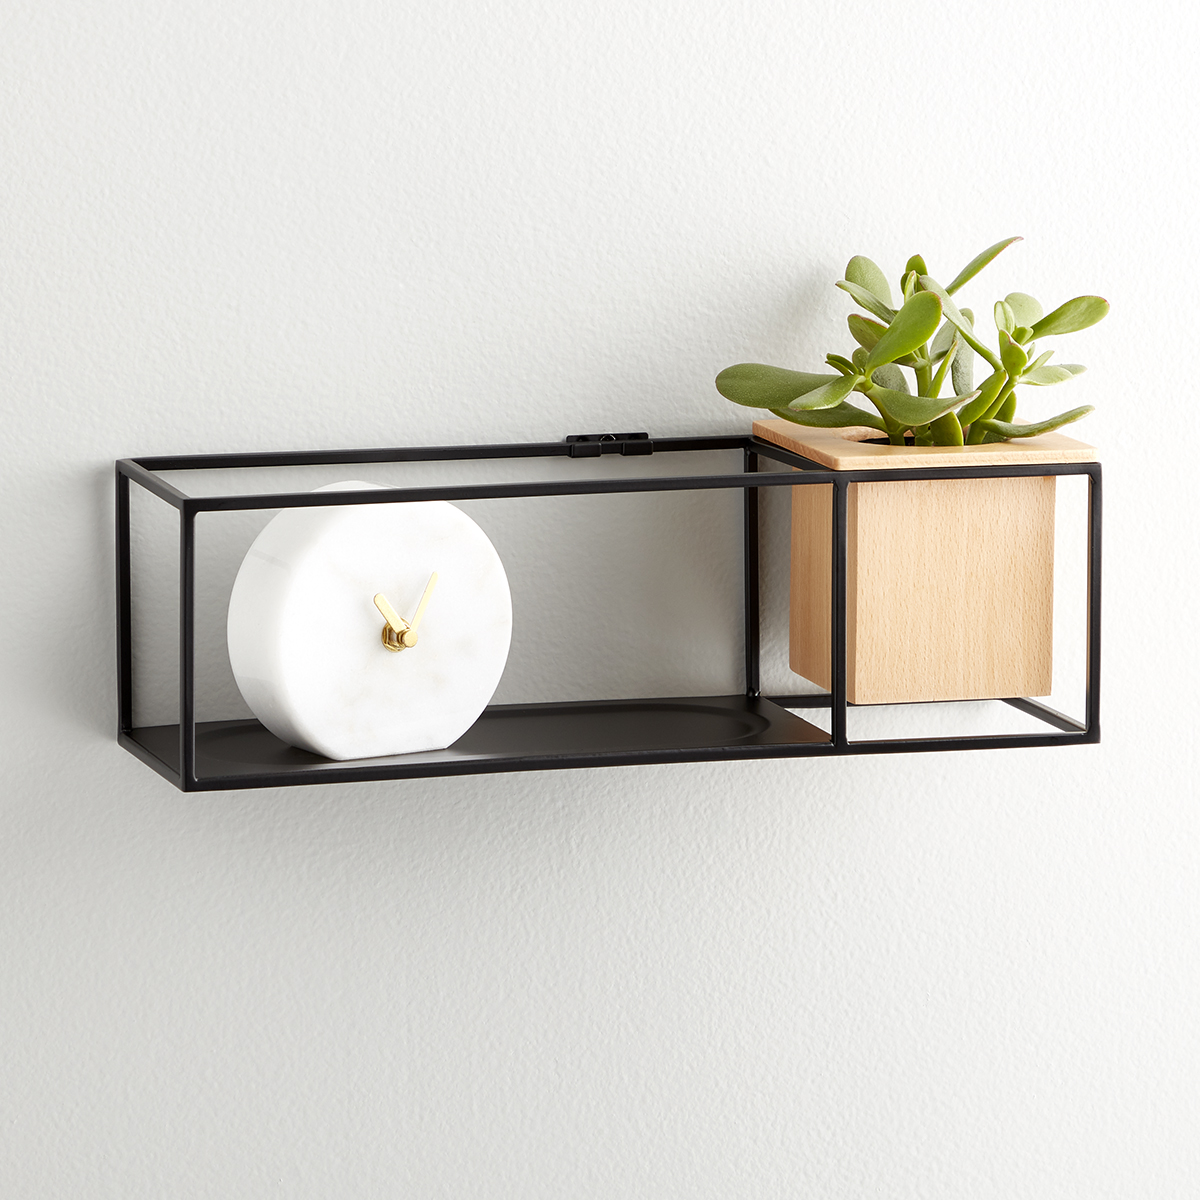 Umbra Small Cubist Wall Shelf